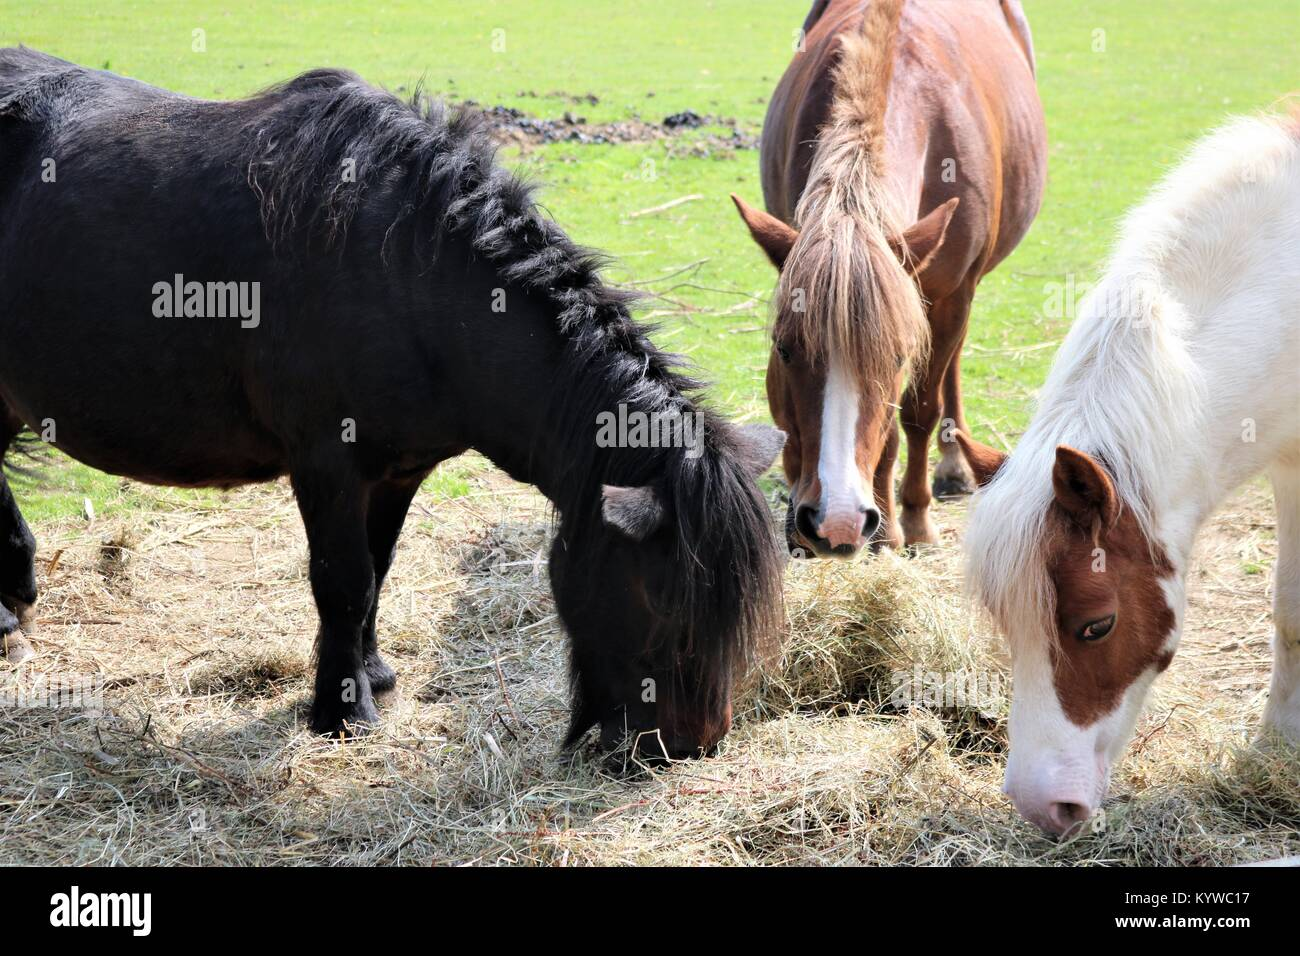 Three horse eating hay in a green field - Stock Image